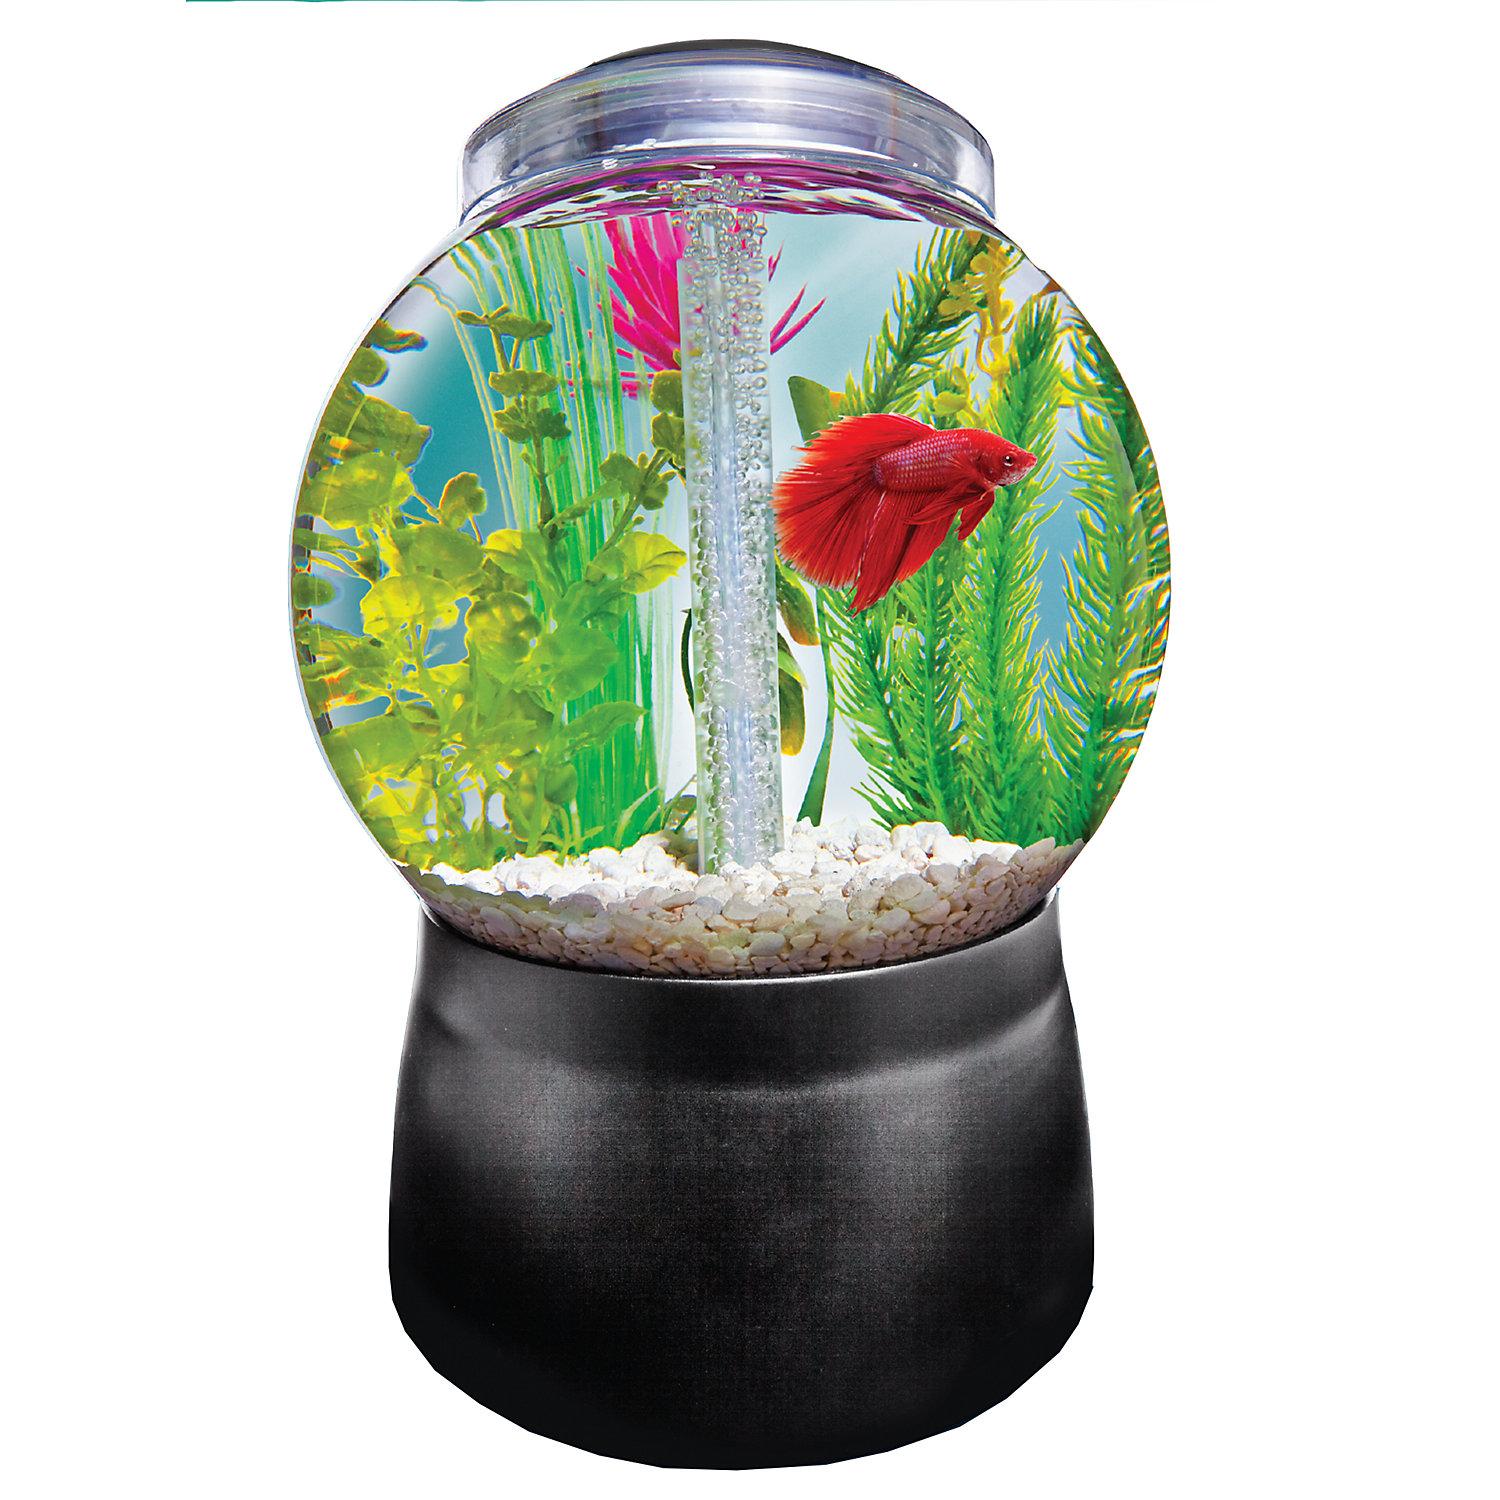 Imagitarium Freshwater Aquarium 5 2 Gallons 2461302 Fish